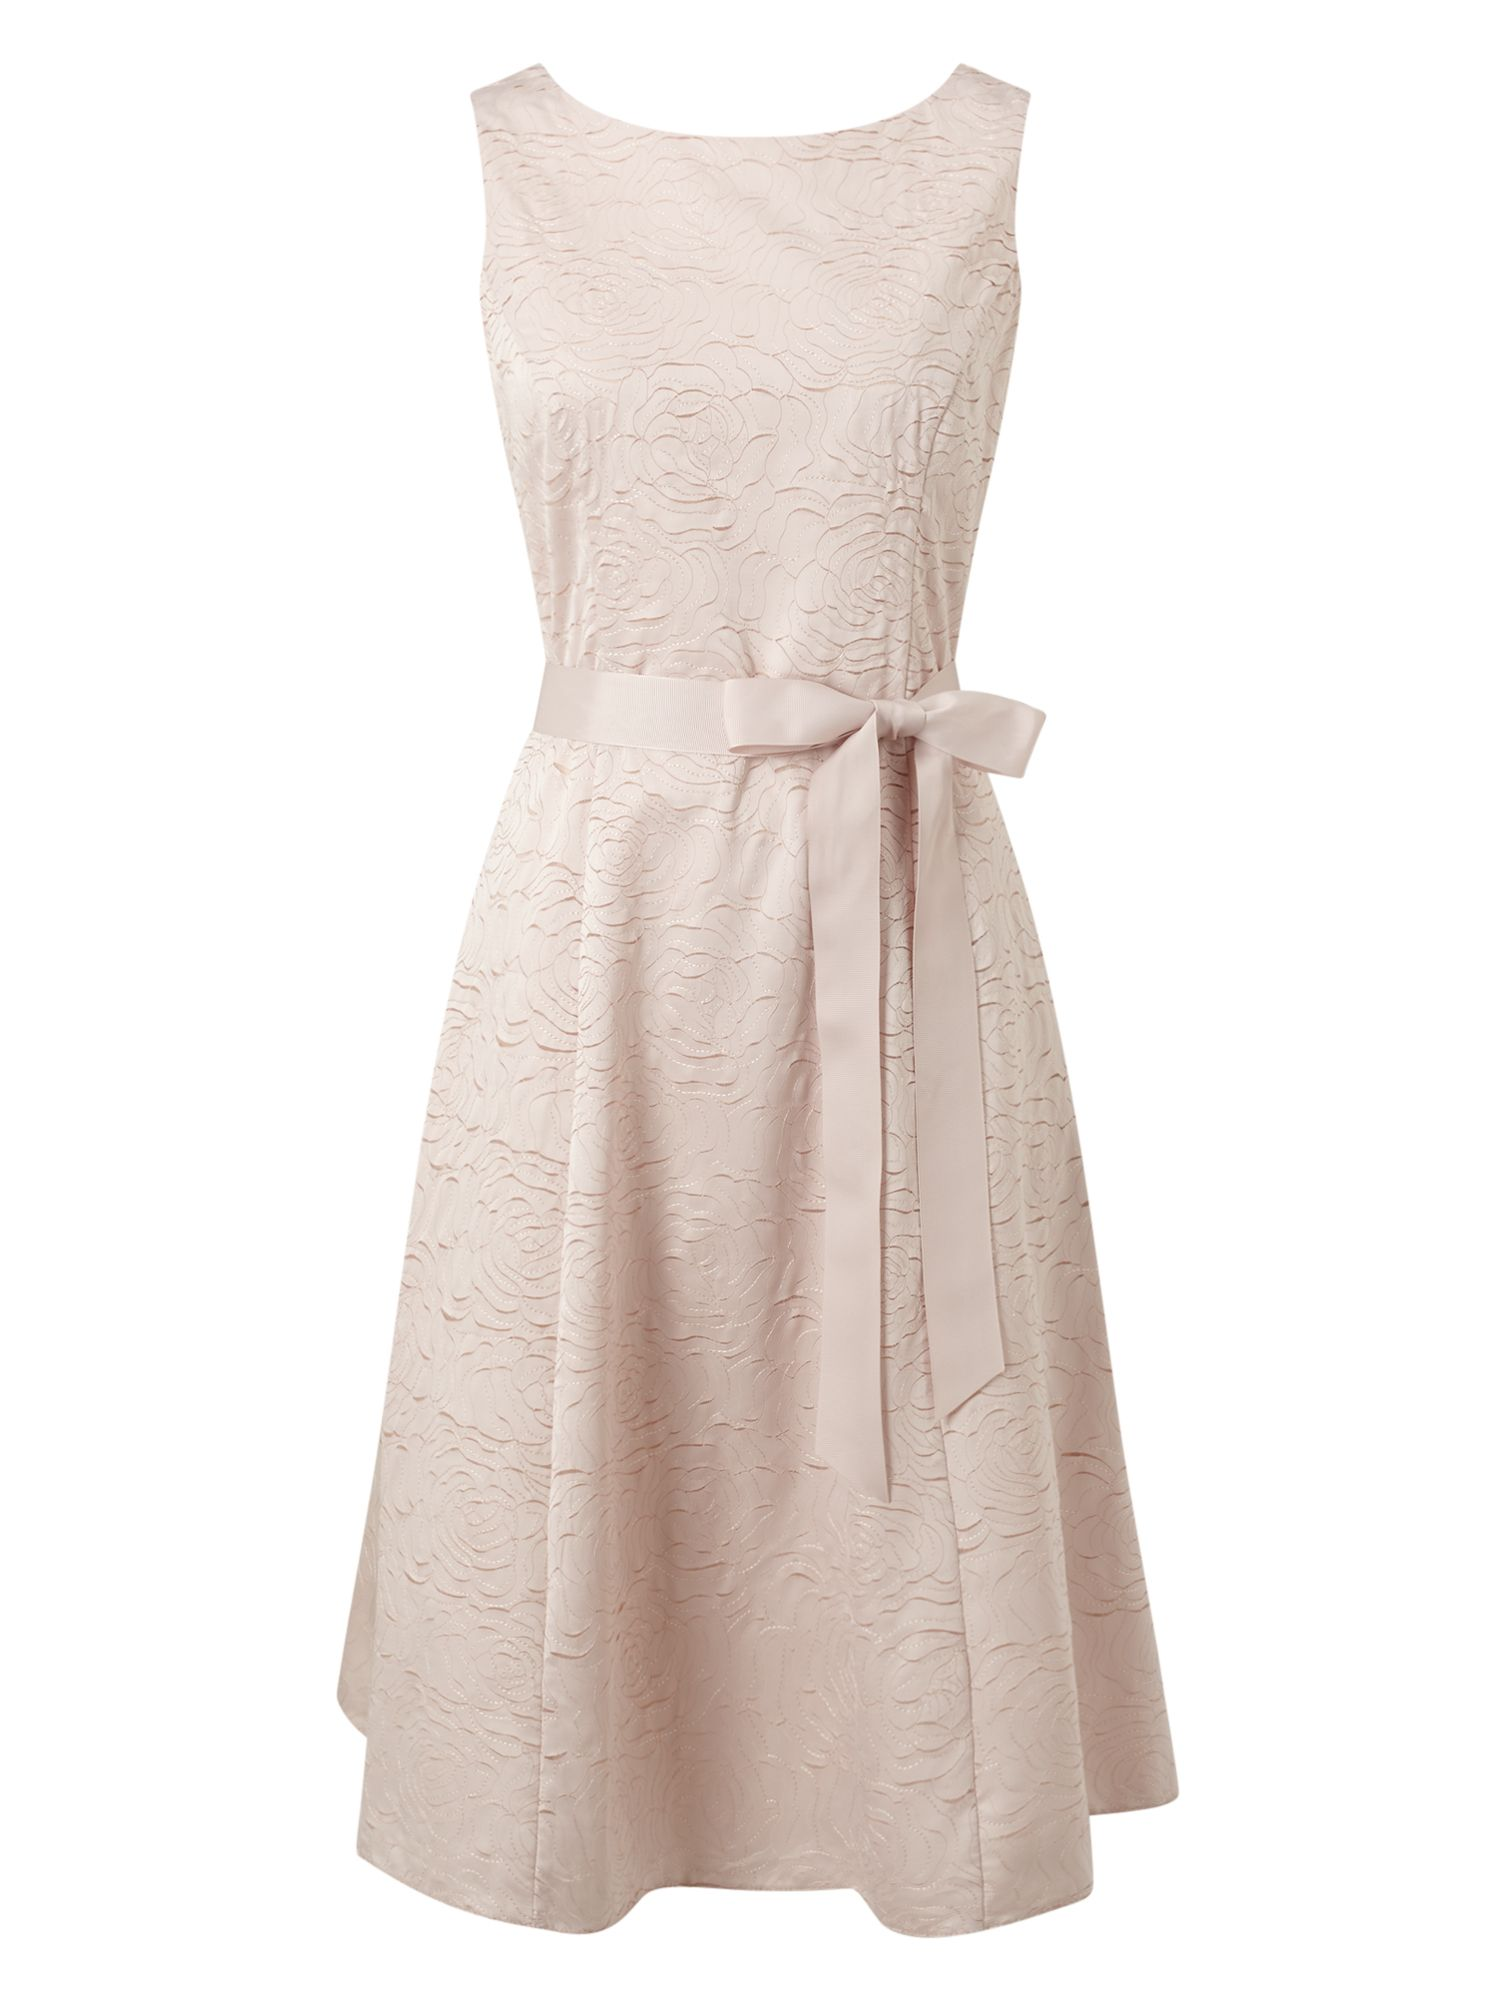 Jacques Vert Lazer Flower Dress, Neutral